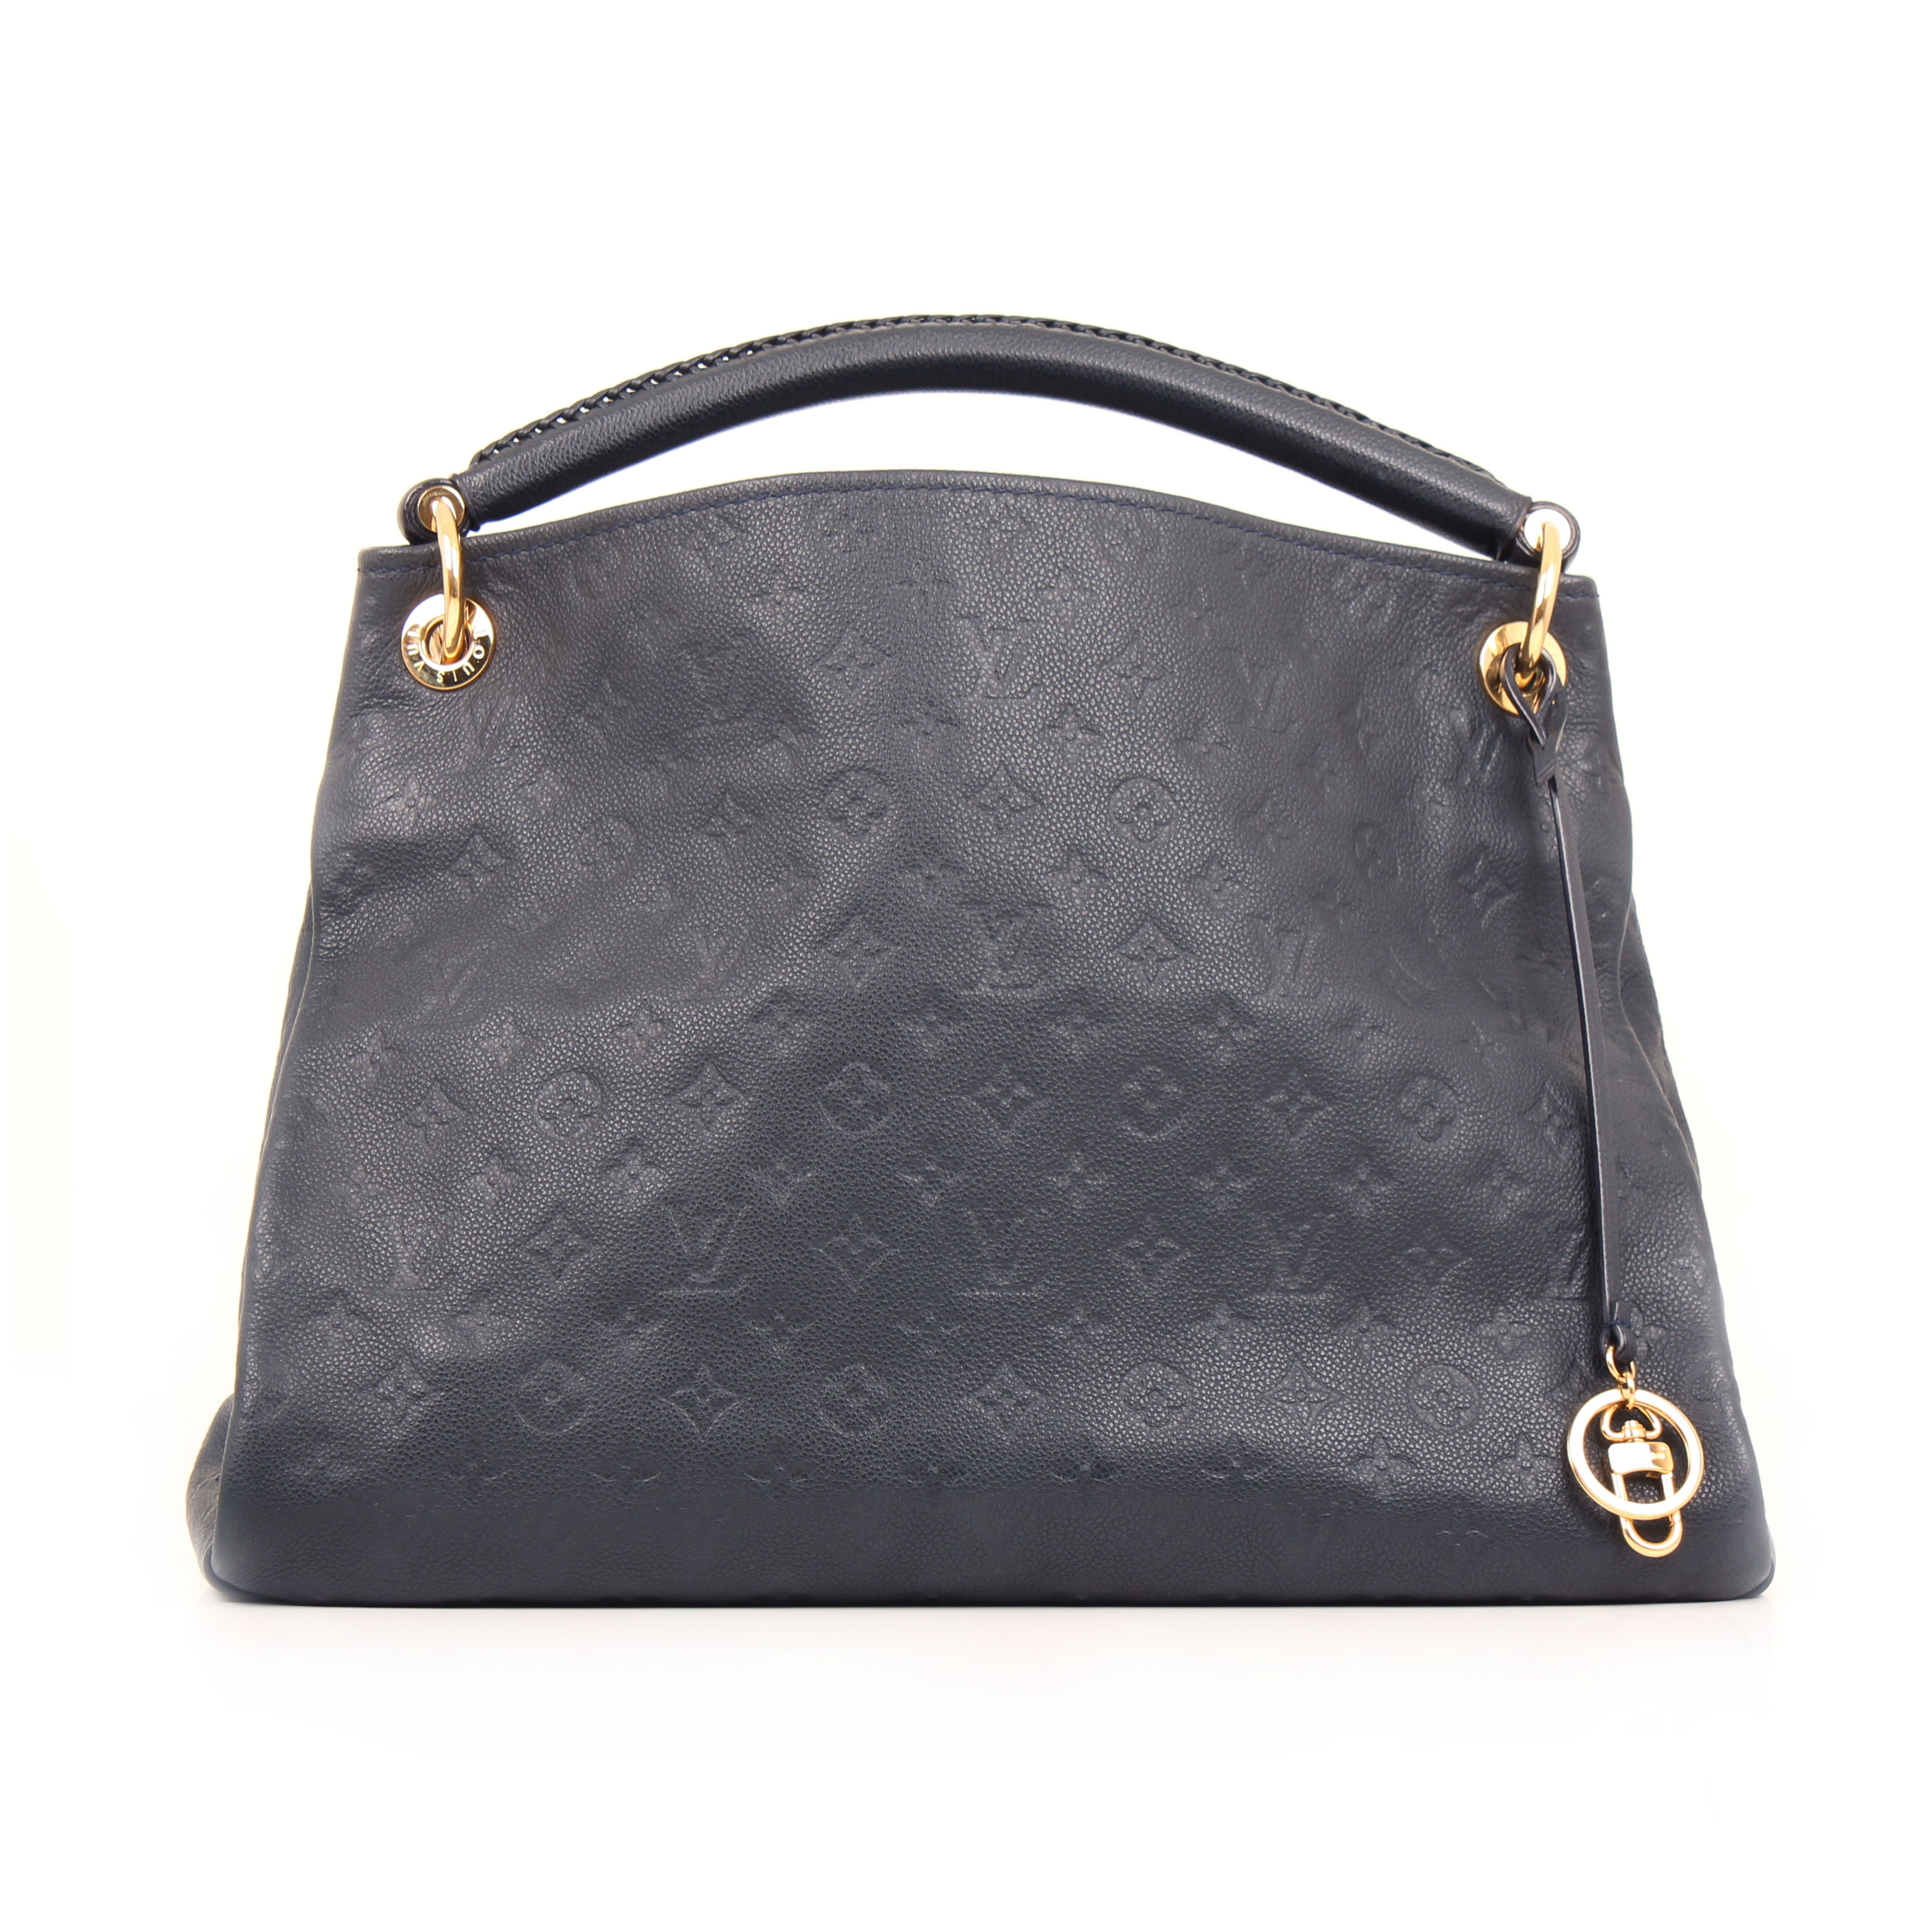 tote bag louis vuitton artsy mm monogram embossed navy blue front 21afe15b36d9c